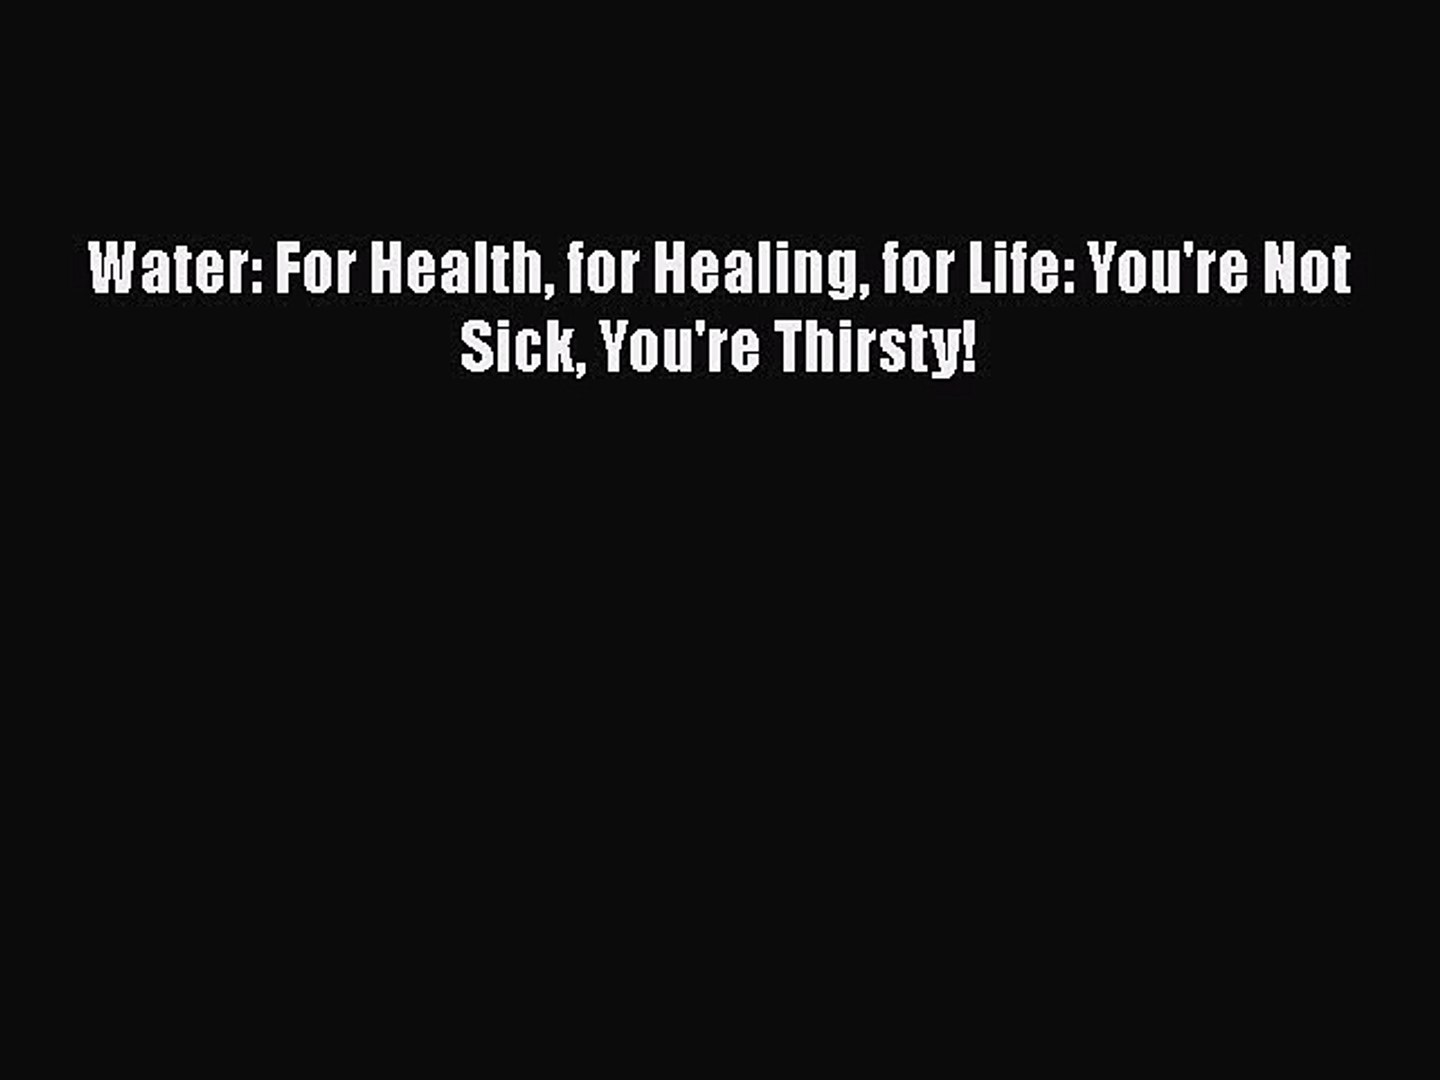 Read Water: For Health for Healing for Life: You're Not Sick You're Thirsty! Ebook Online